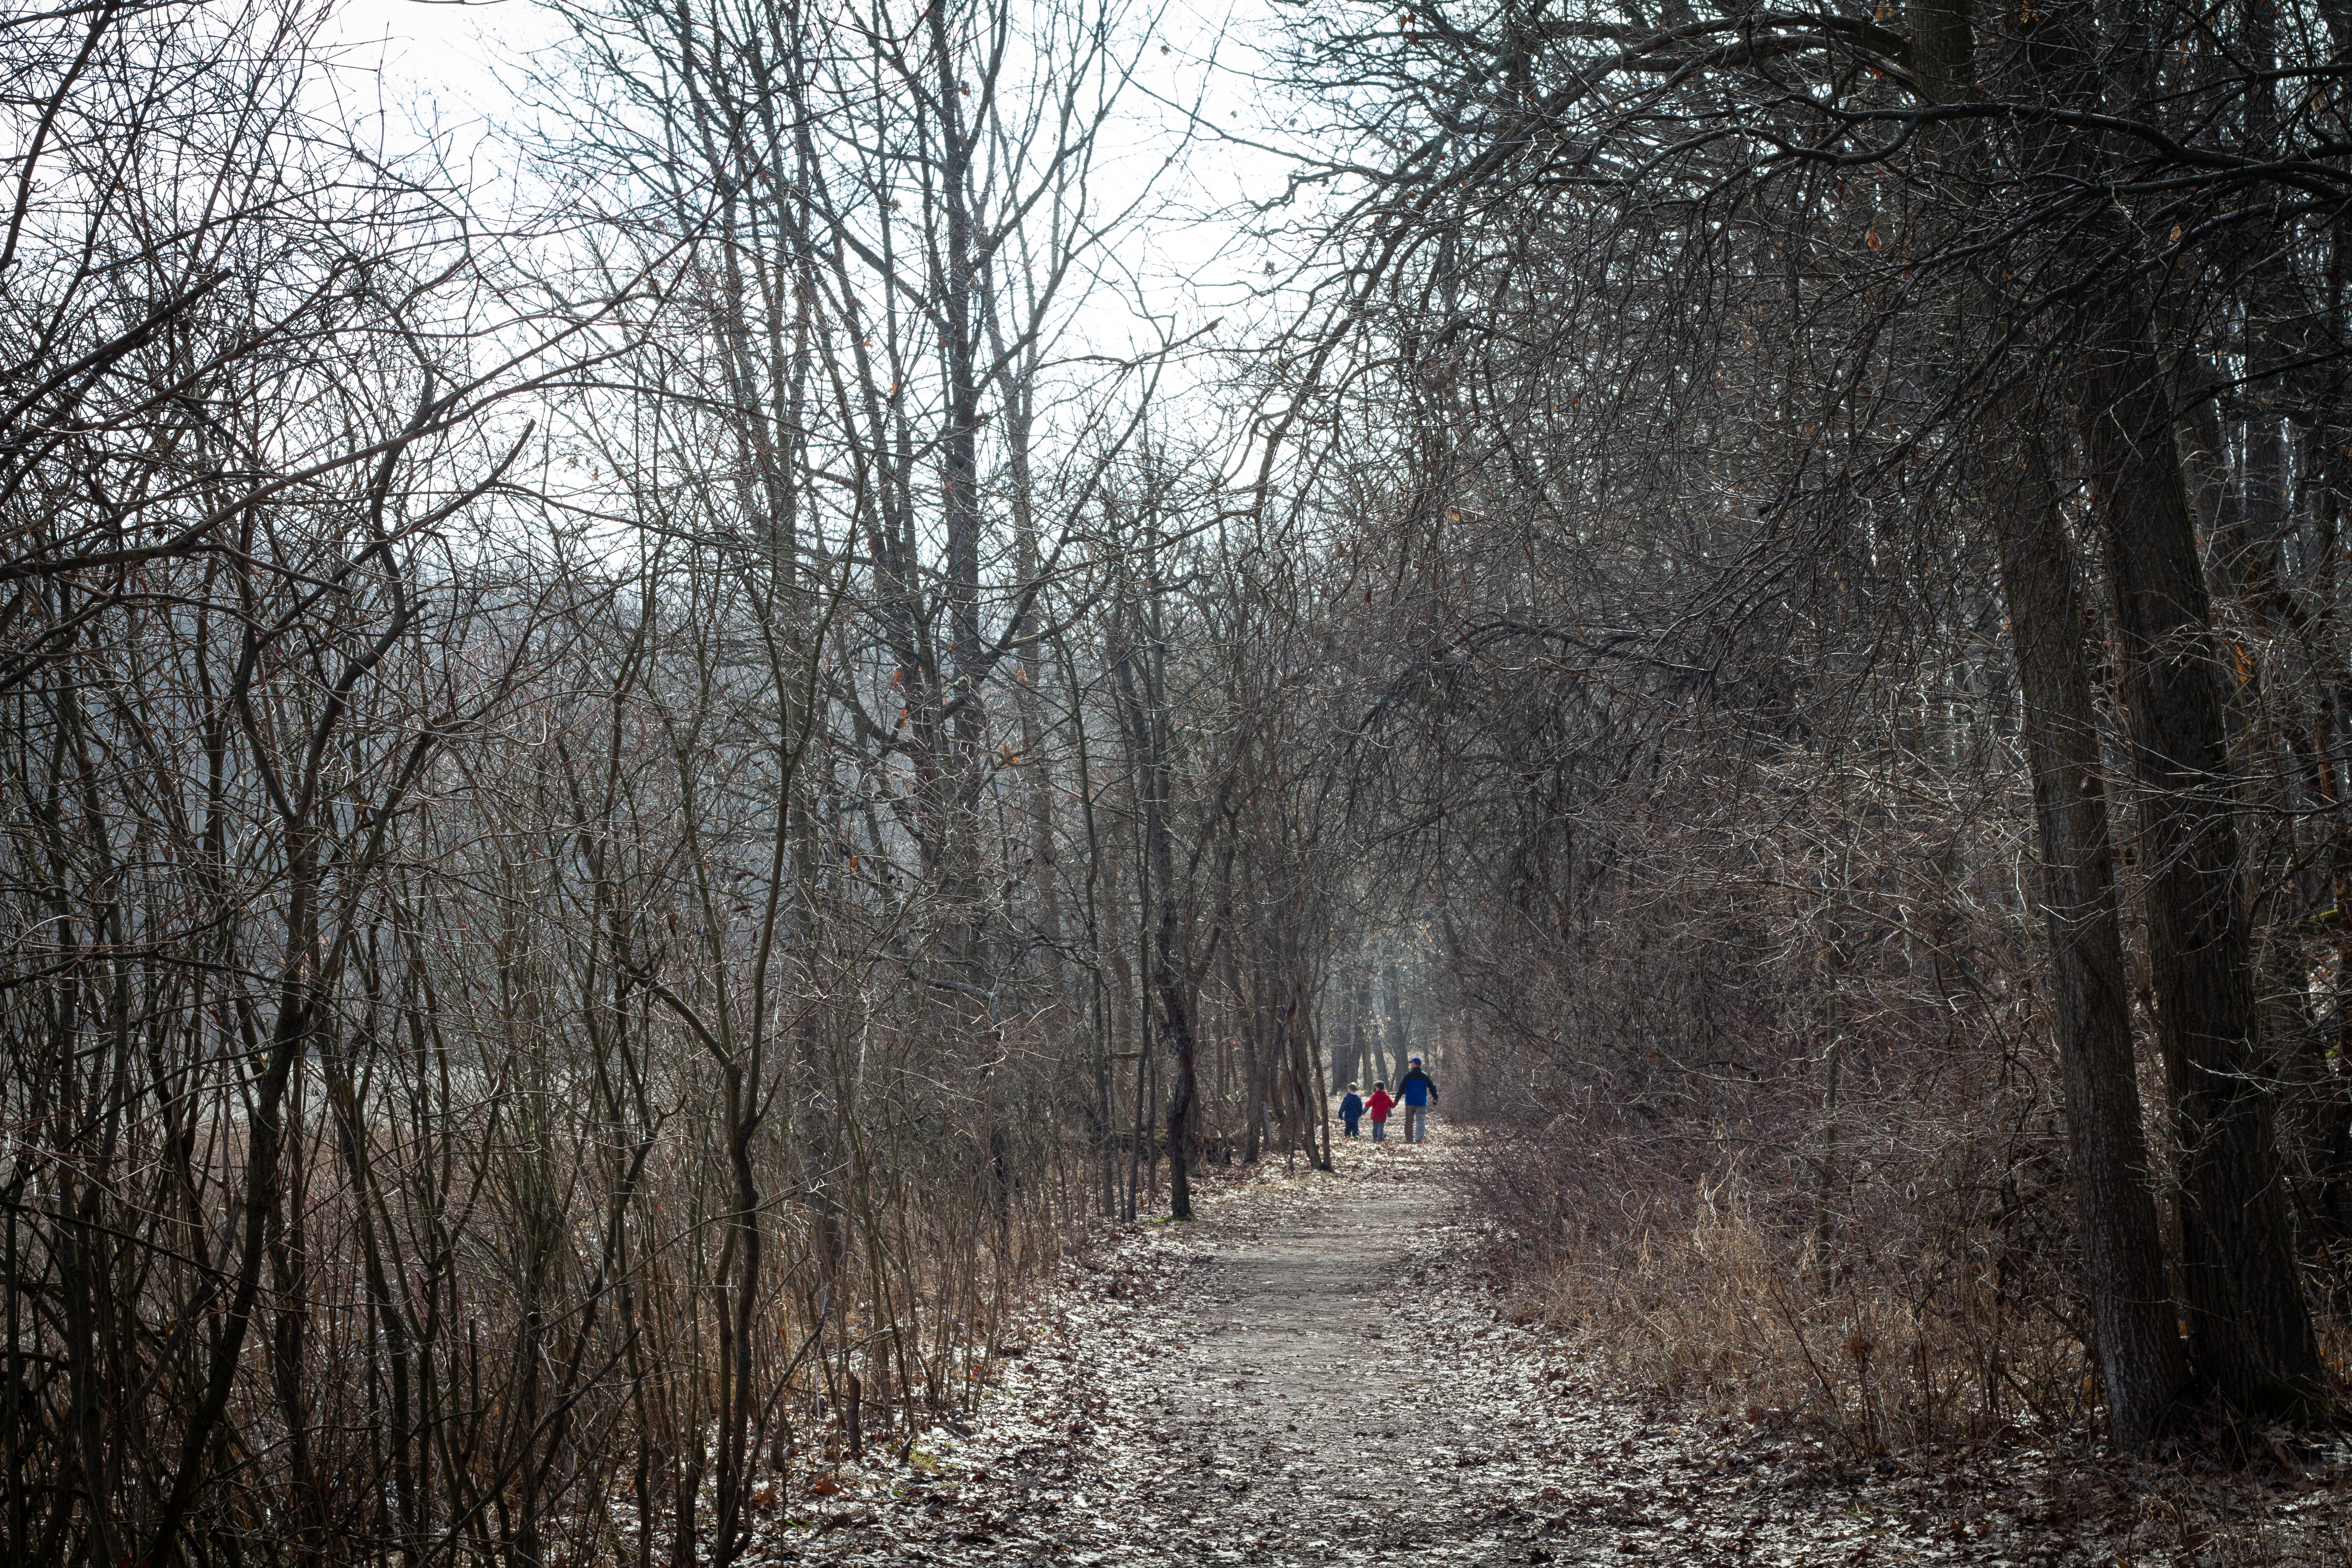 The Williams family from Lawton, Michigan walks a trail at Asylum Lake Preserve on Wednesday, March 25.{ }(WWMT/Sarah White)